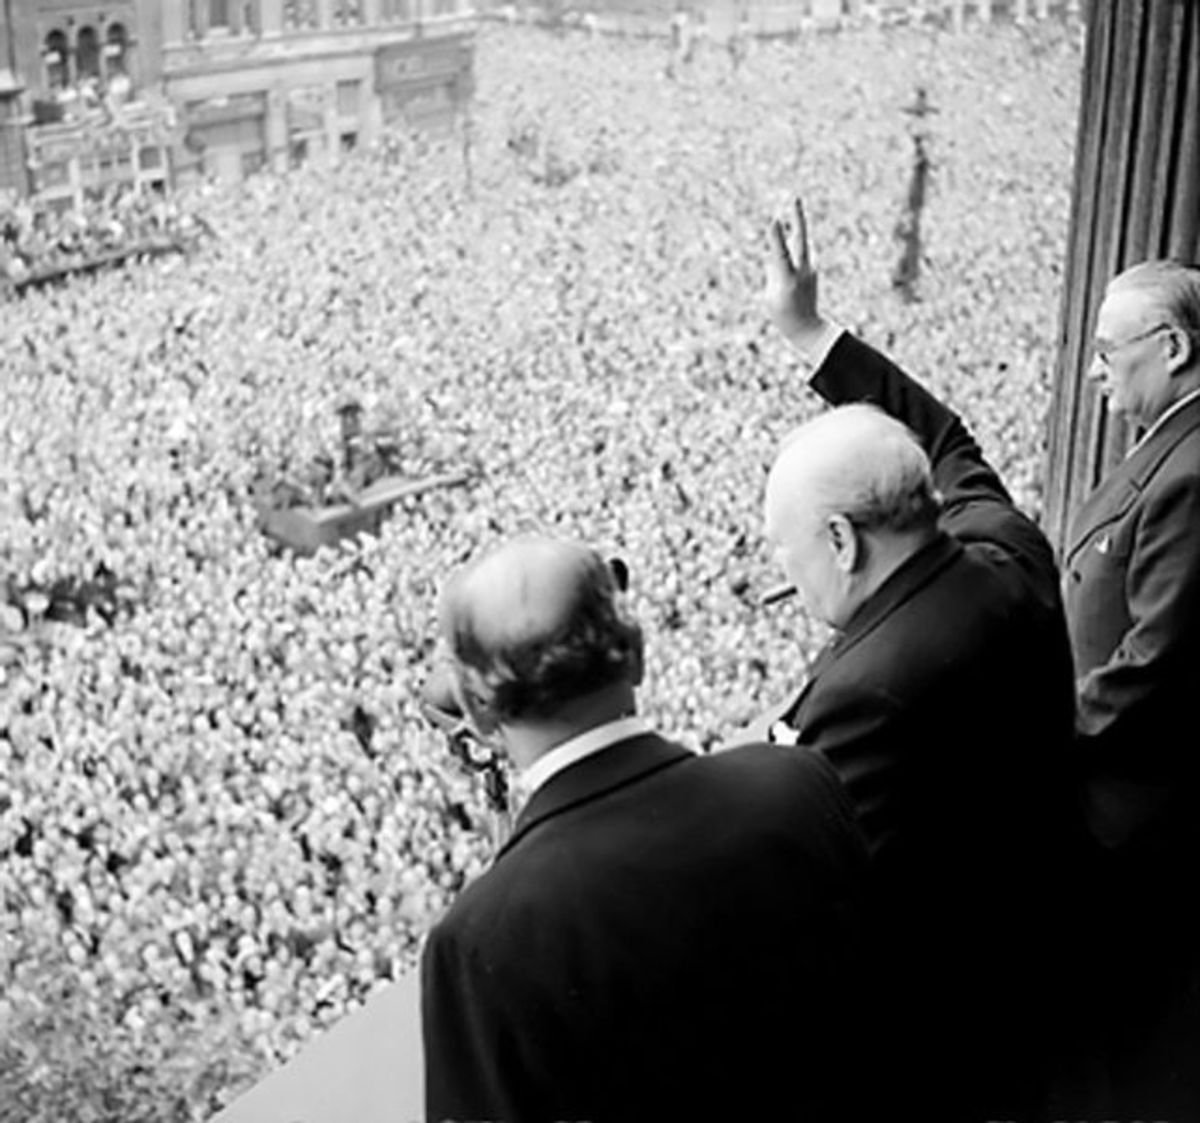 Sir Winston Churchill gives his V for Victory sign to crowds in Whitehall on the day he broadcast to the nation that the war with Germany had been won, 8 May 1945